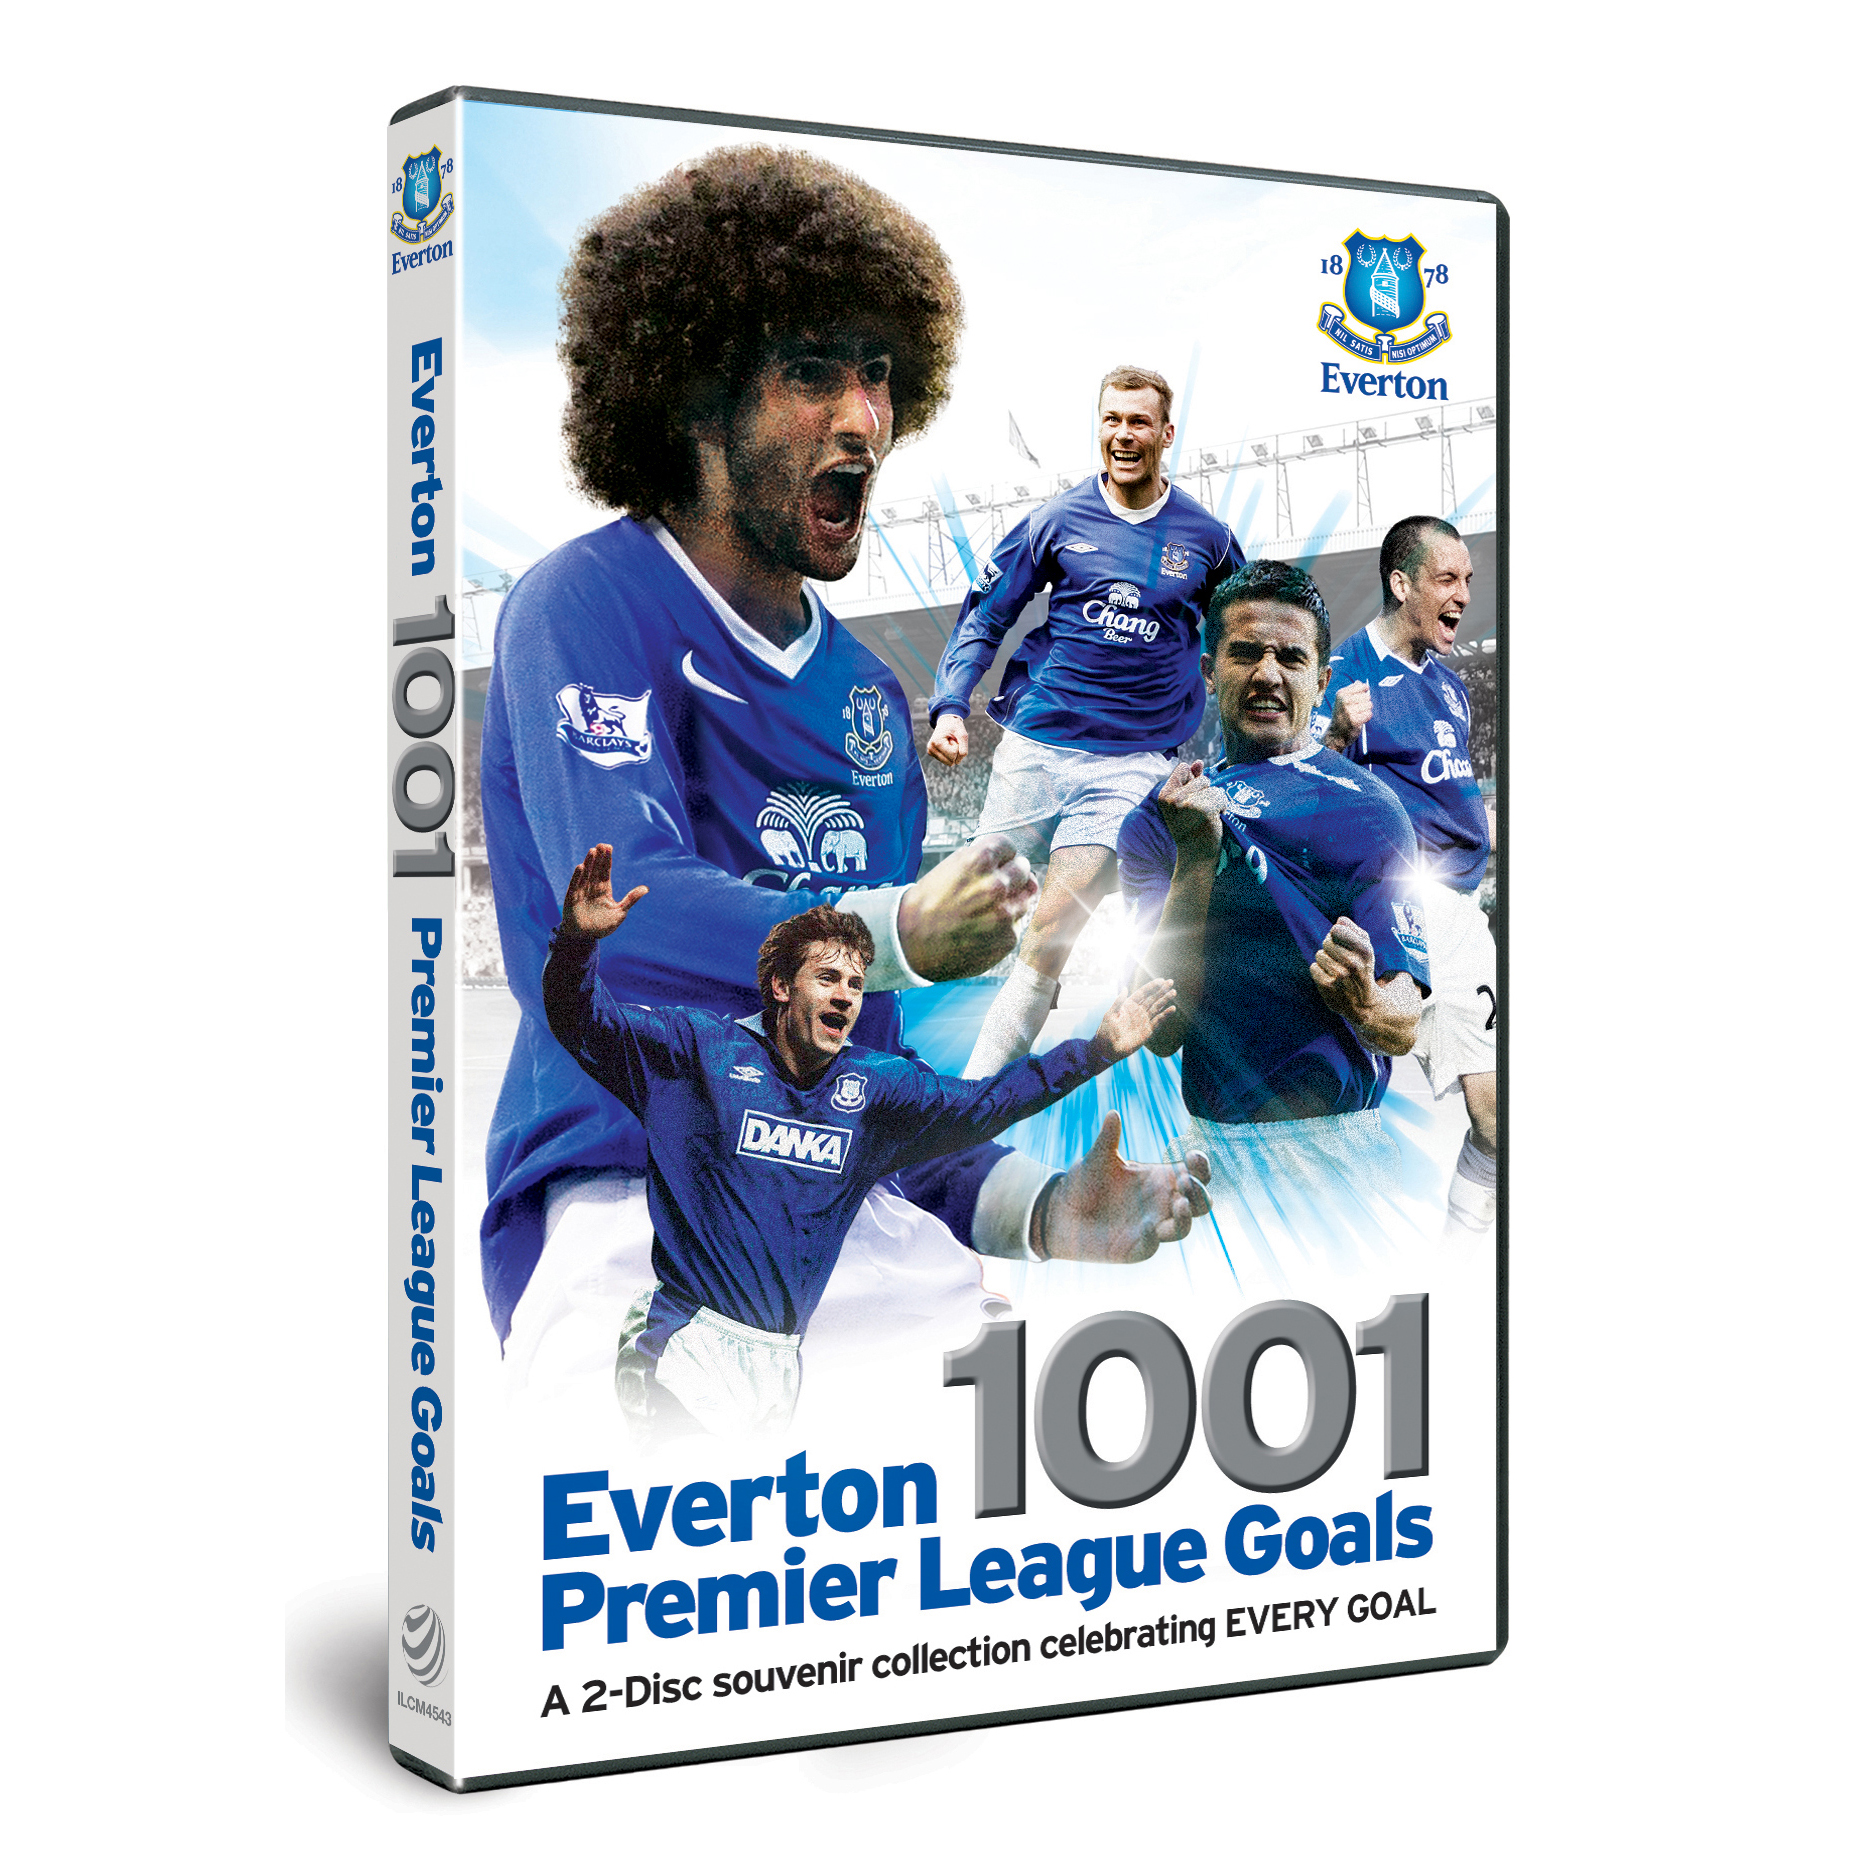 Everton 1001 Premier League Goals DVD